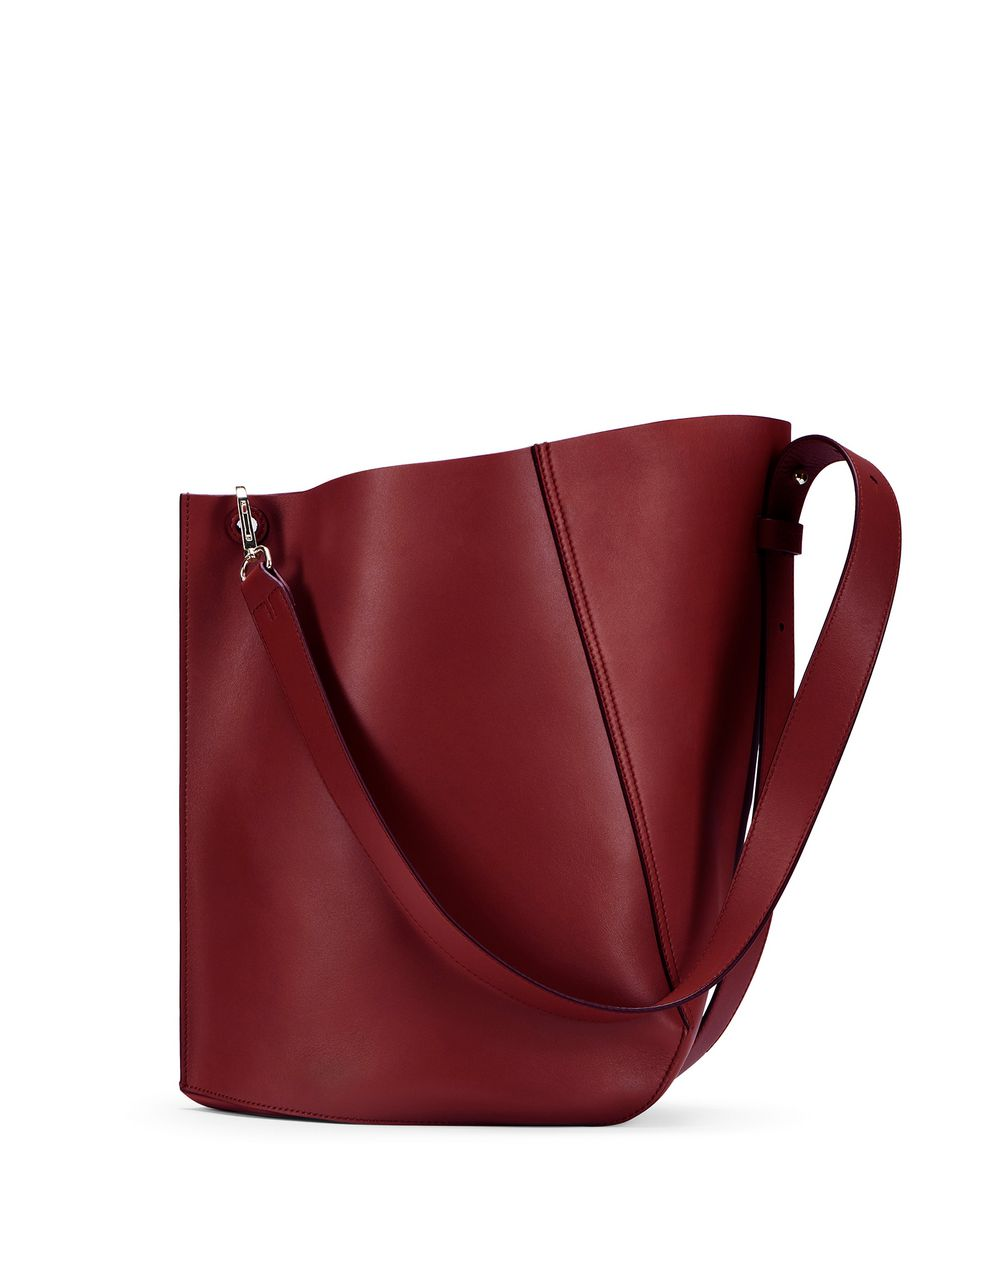 BORSA HOOK MEDIA - Lanvin